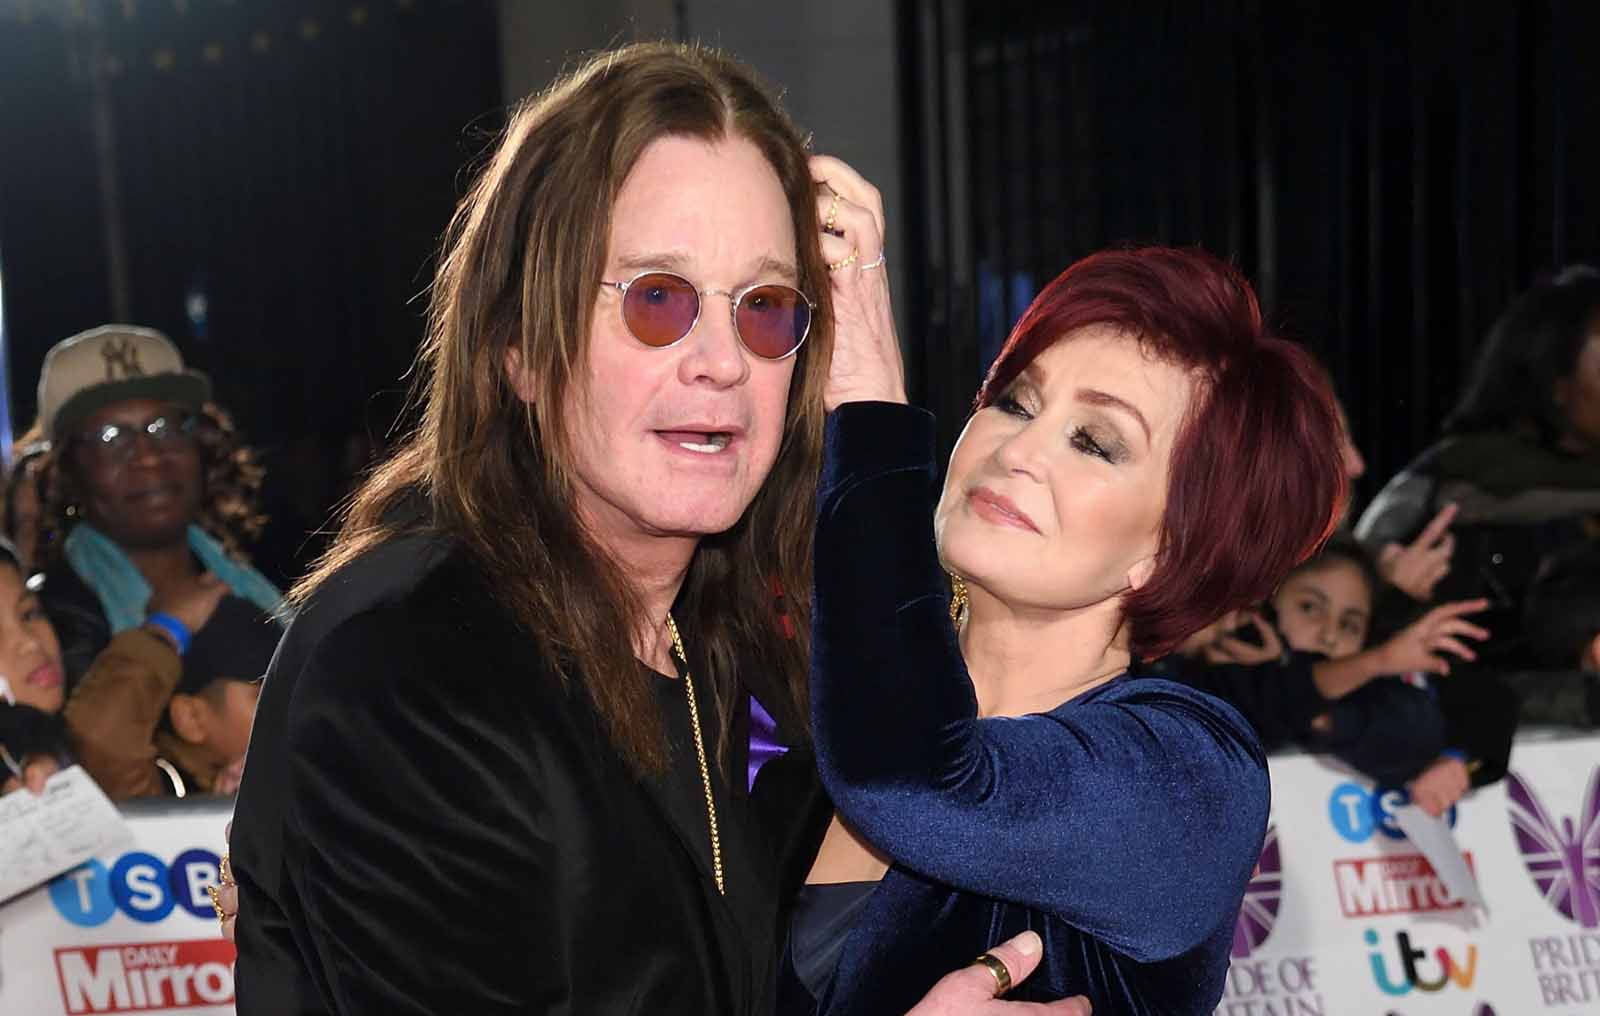 Ozzy Osbourne continues to be an oddball in the media, as he recently discussed the time he tried to murder his current wife Sharon.